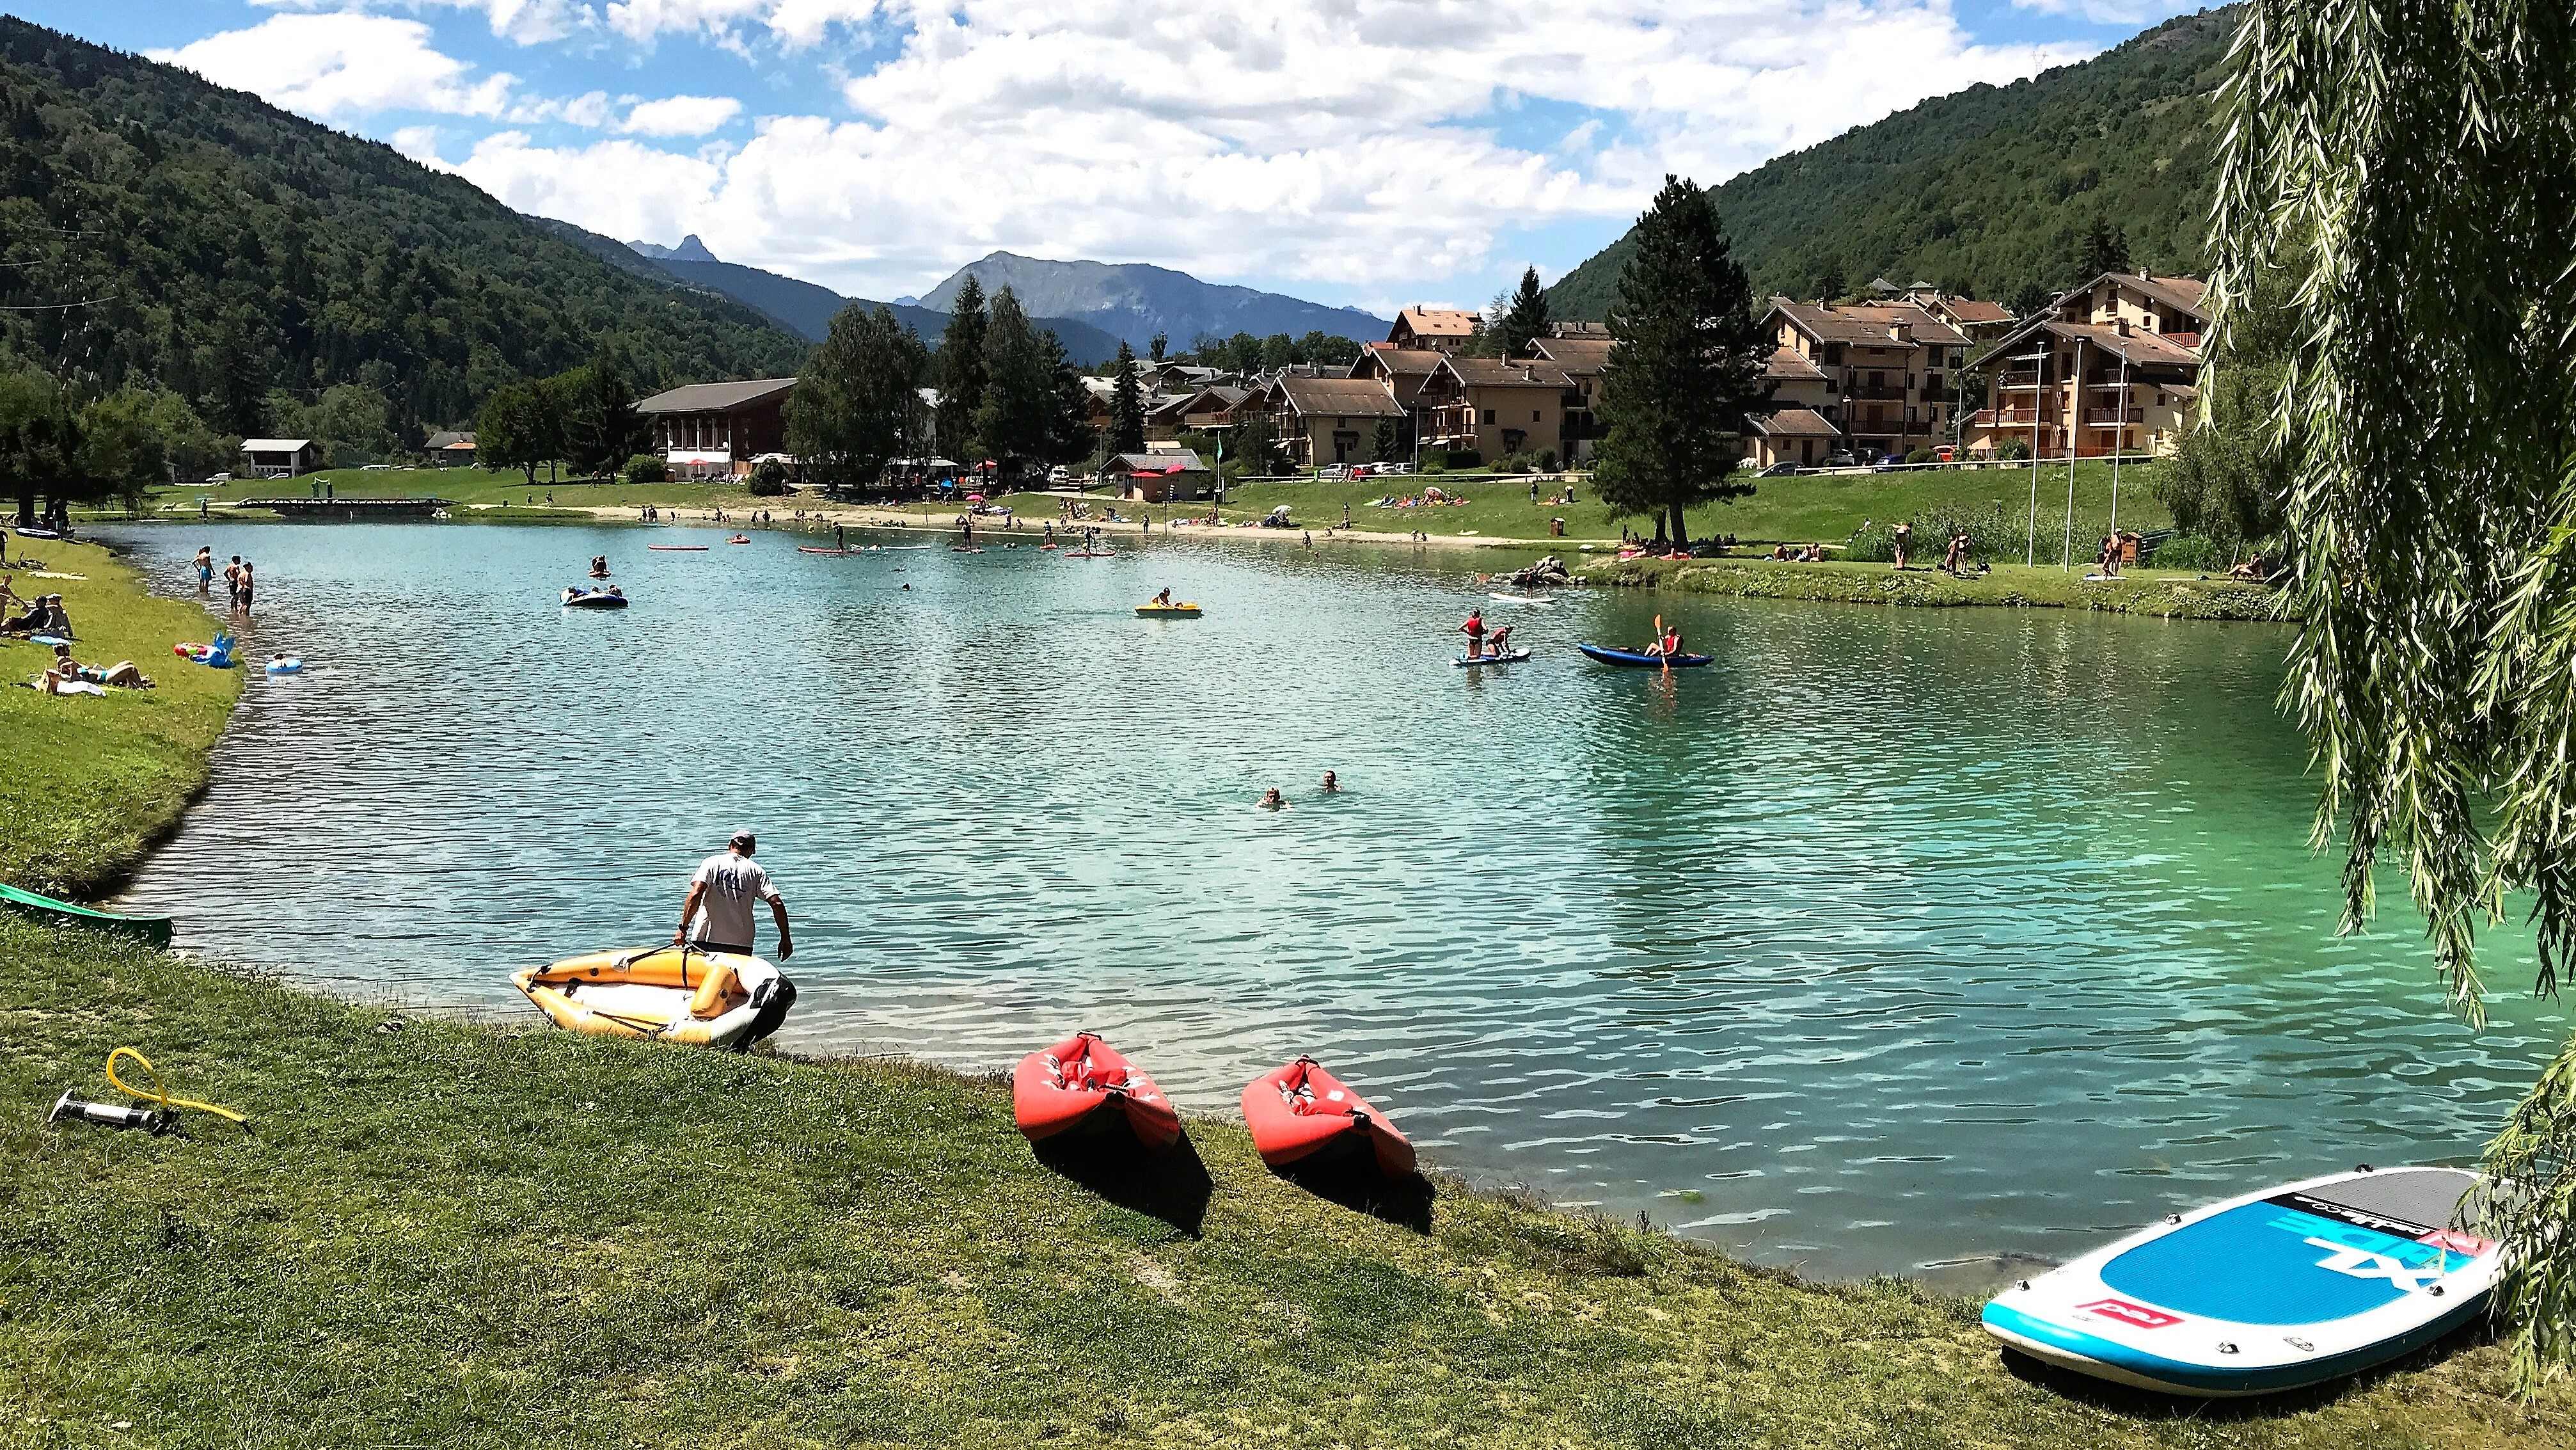 Bozel Plage - The lake of the mountain village of Bozel in the Tarentaise, Rhone Alpes, Savoie region of France. Fabulous Outdoors